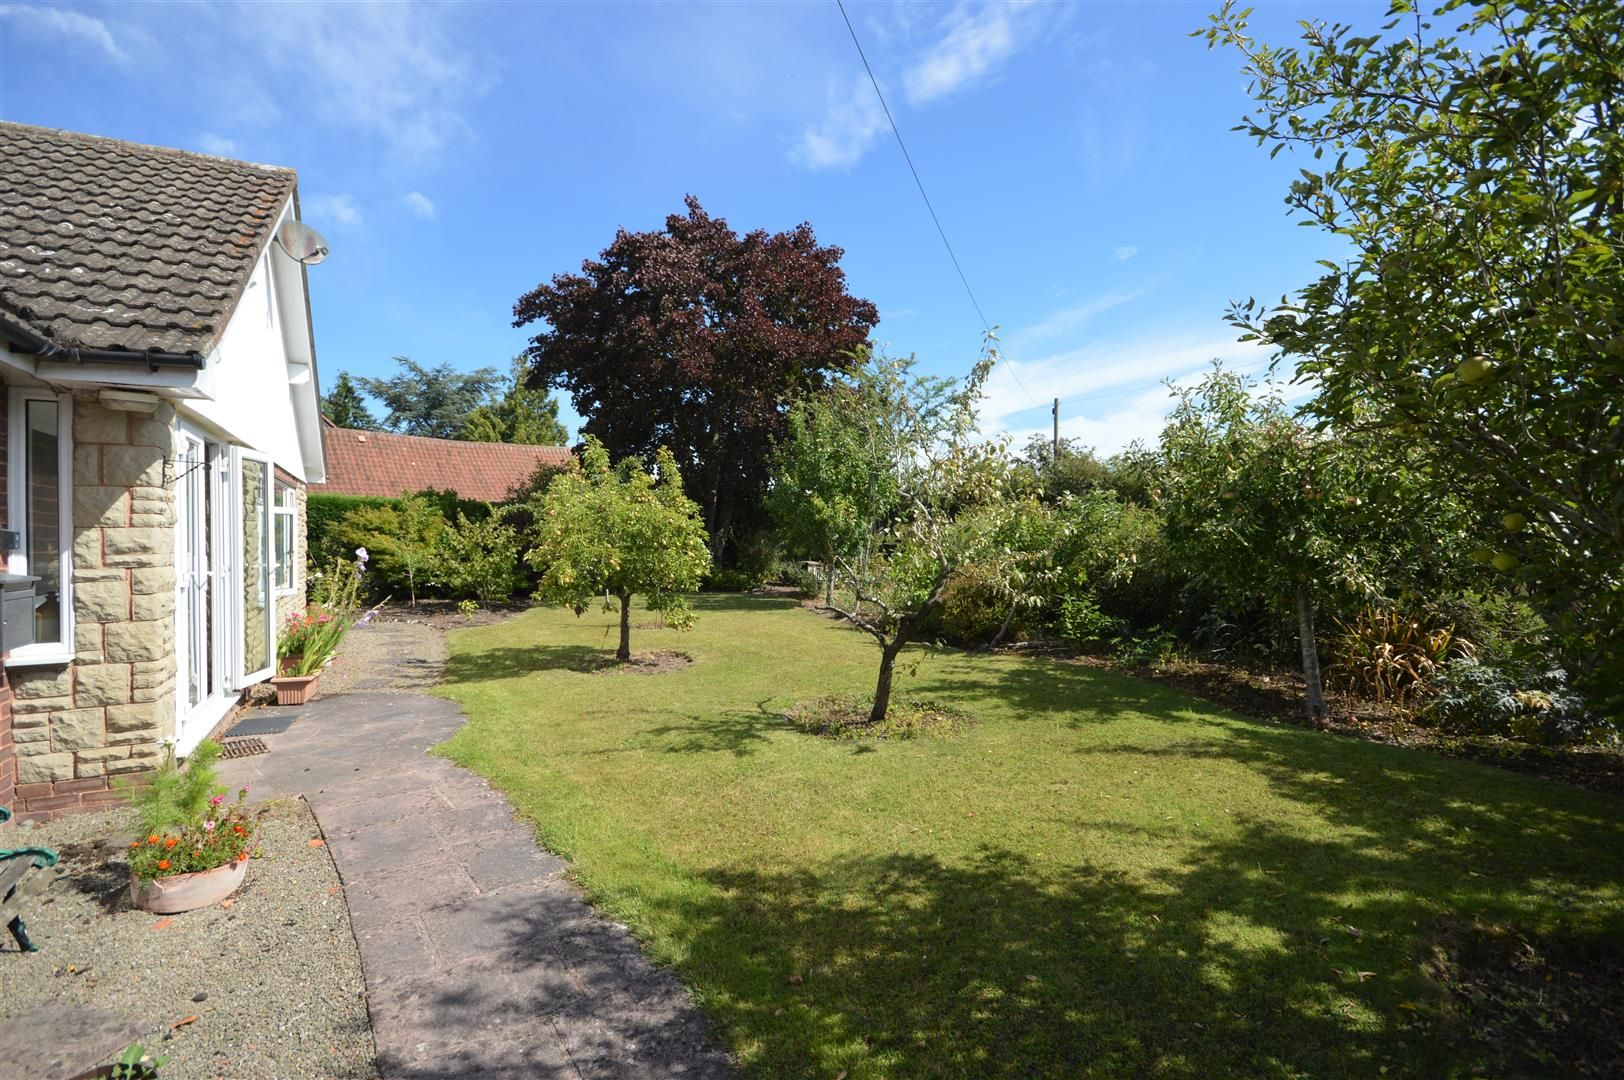 4 bed detached-bungalow for sale in Bodenham 10